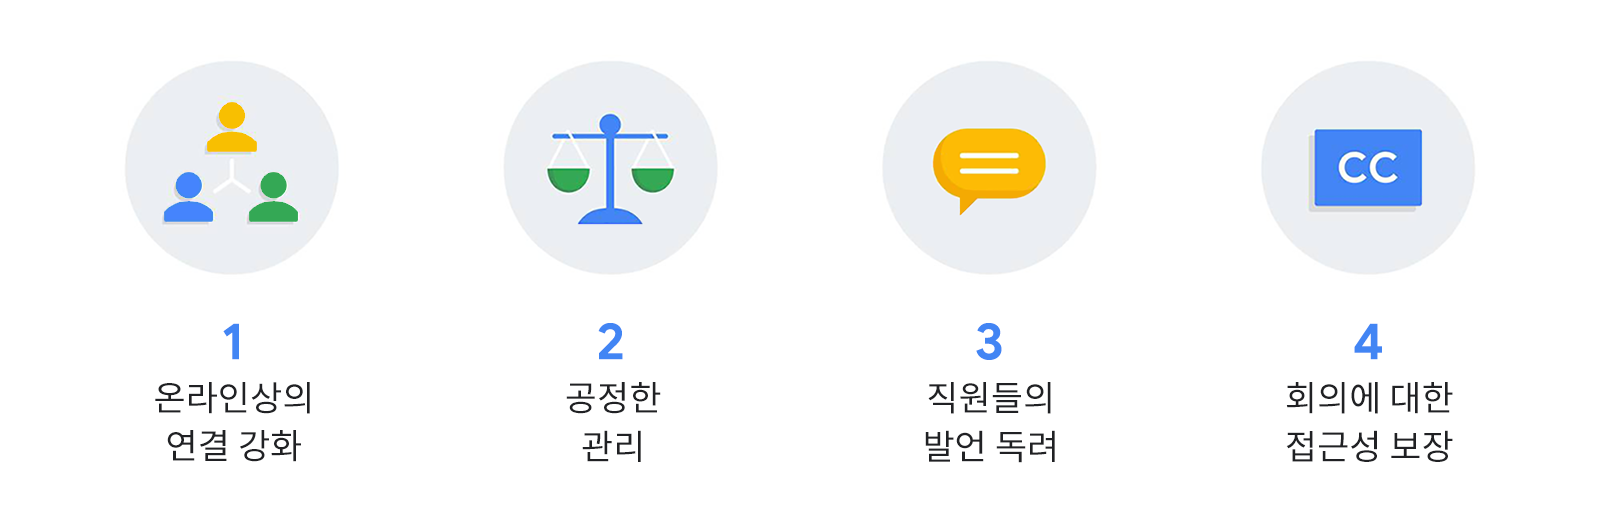 1796_inline_The_Keyword_Repost_Inclusion(수정).png